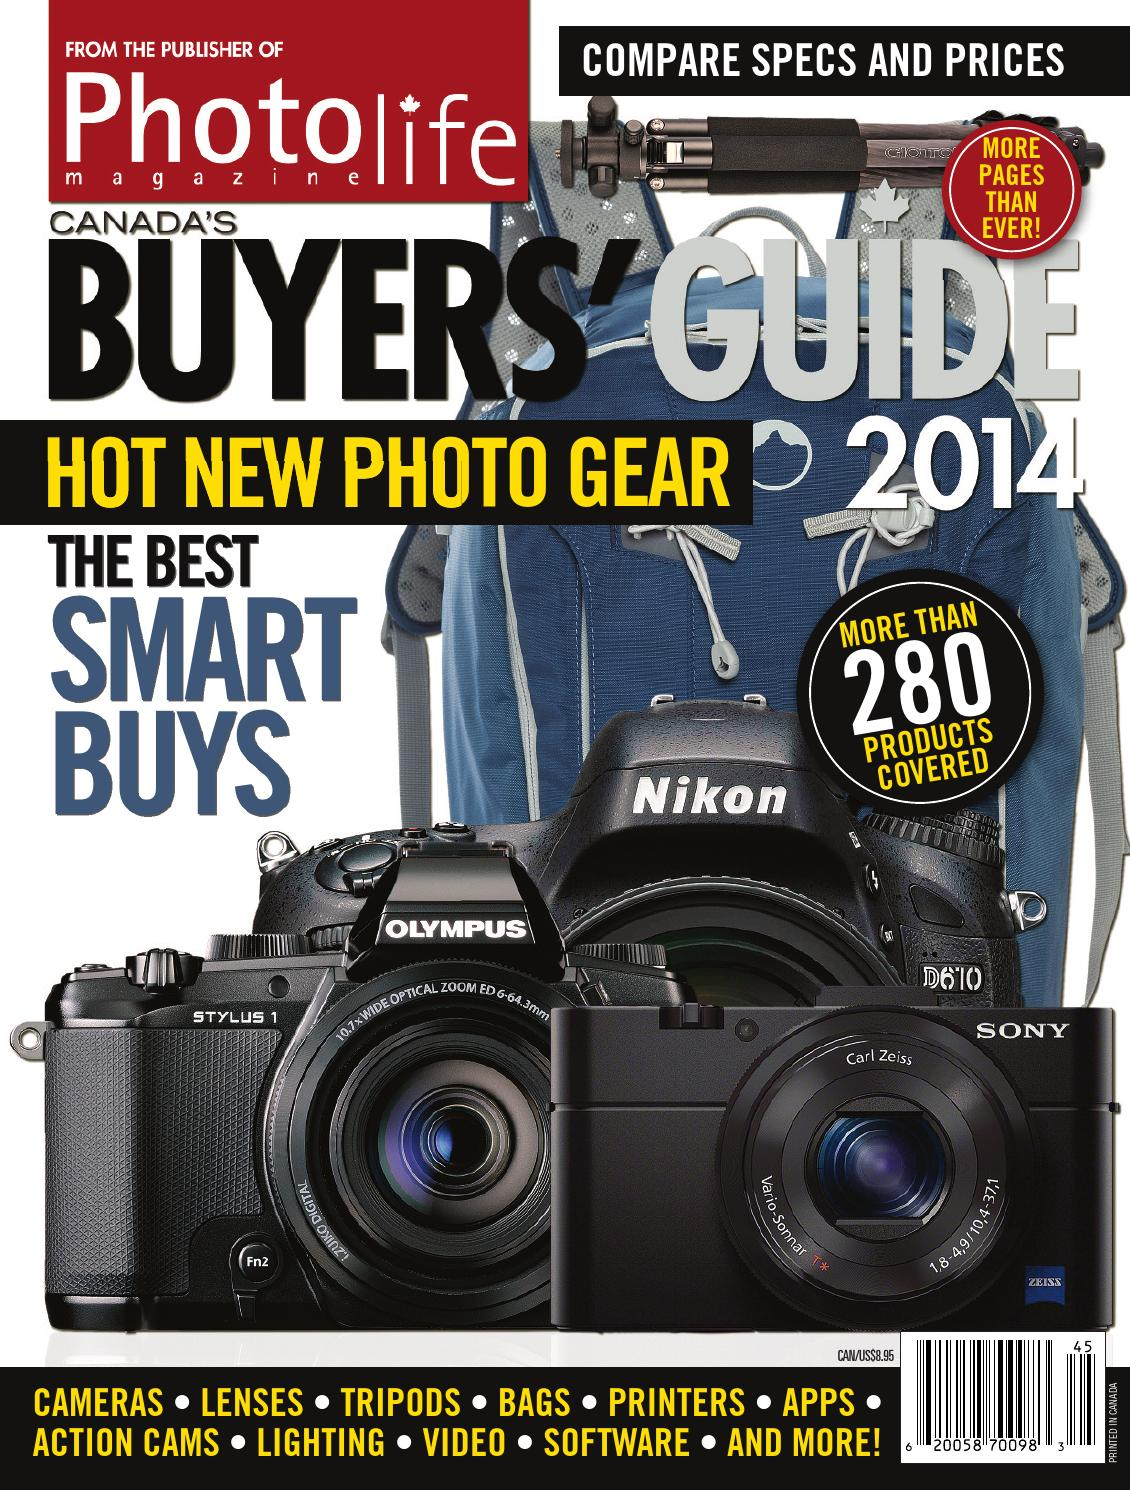 Photo Life Buyers Guide 2014 By Apex Publications Issuu Ricoh Strap St 3 W